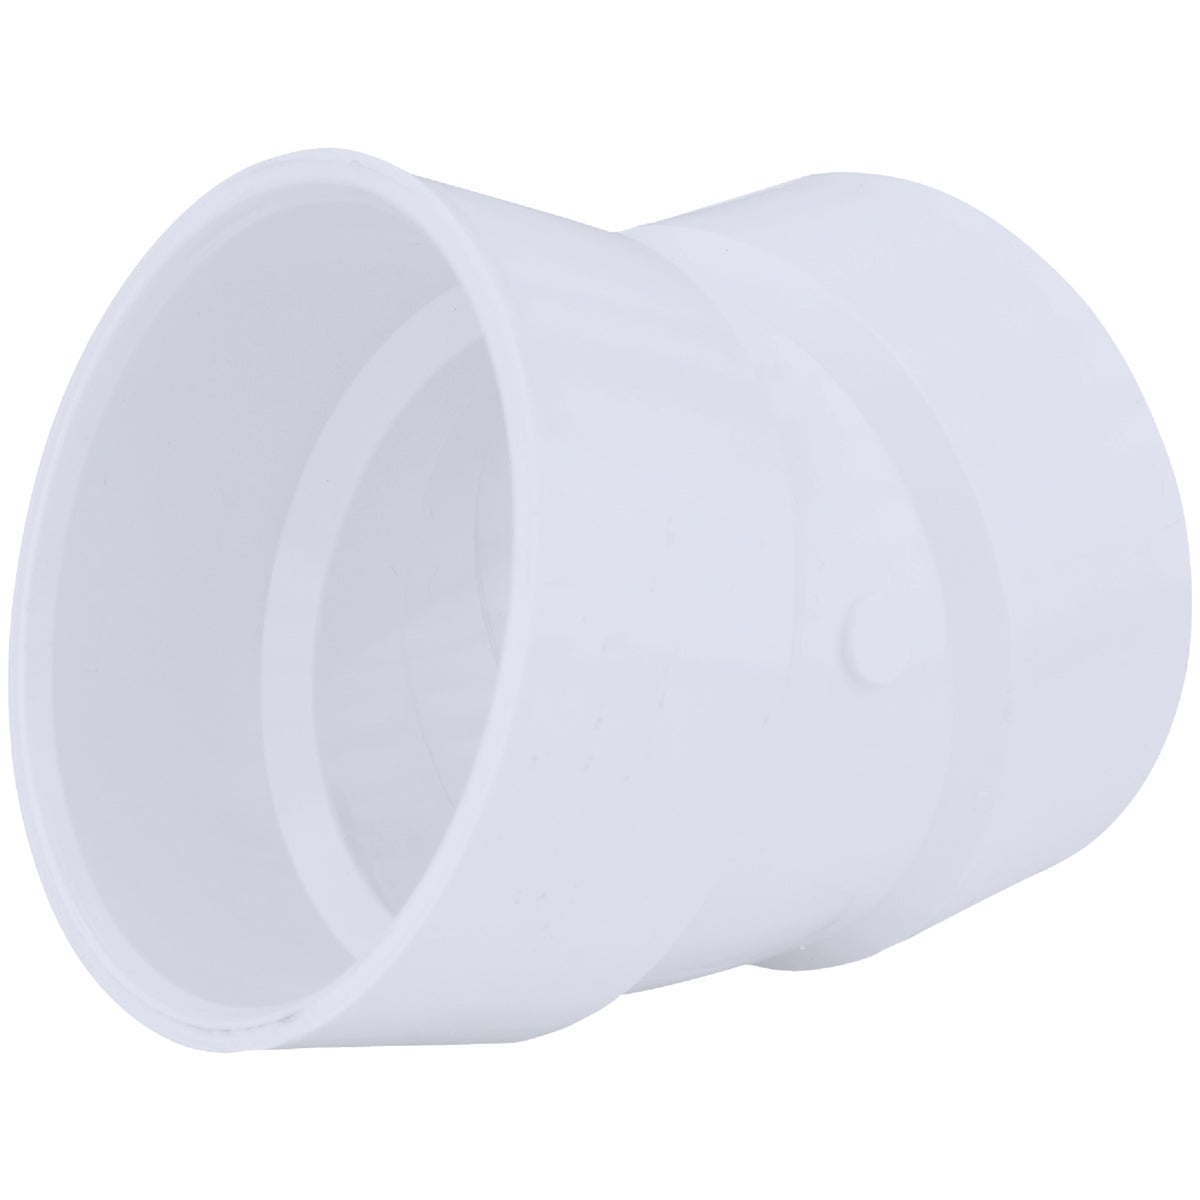 "4"" 22-1/2D PVC-DWV ELBOW - 70840 by Genova Inc  Pvc Dwv"